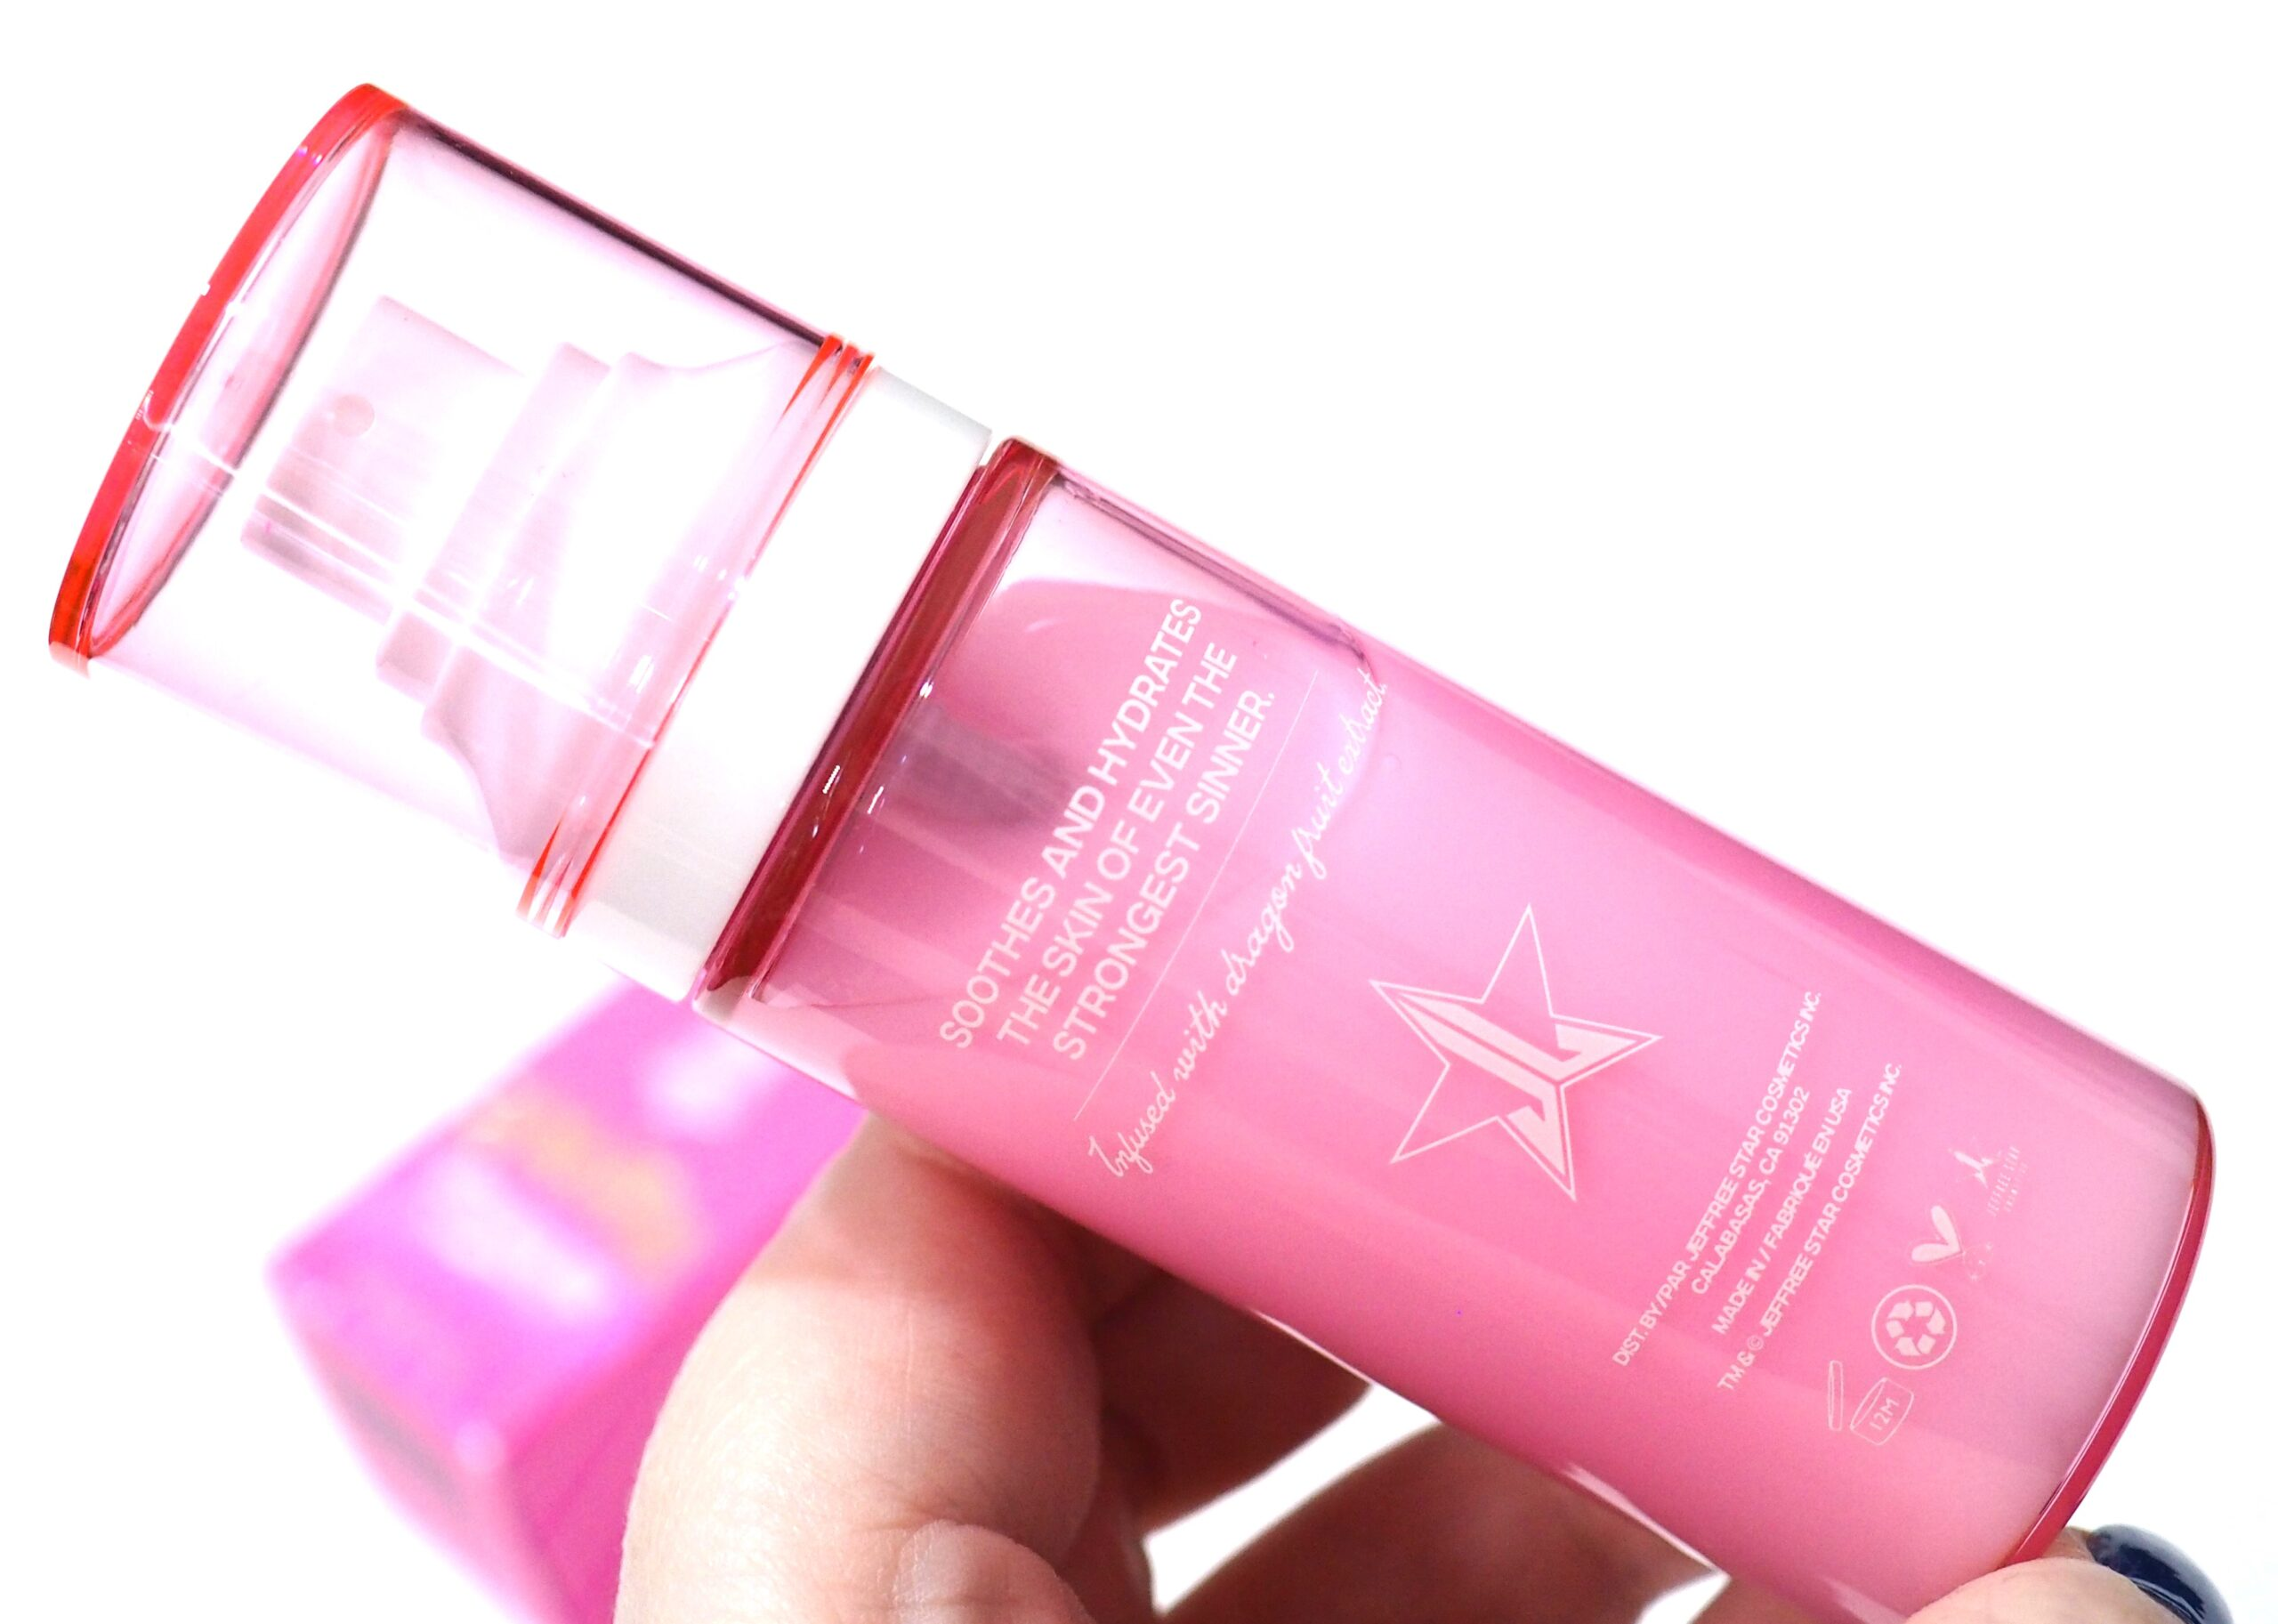 Jeffree Star Cosmetics Holy Mist Soothing Facial Spray